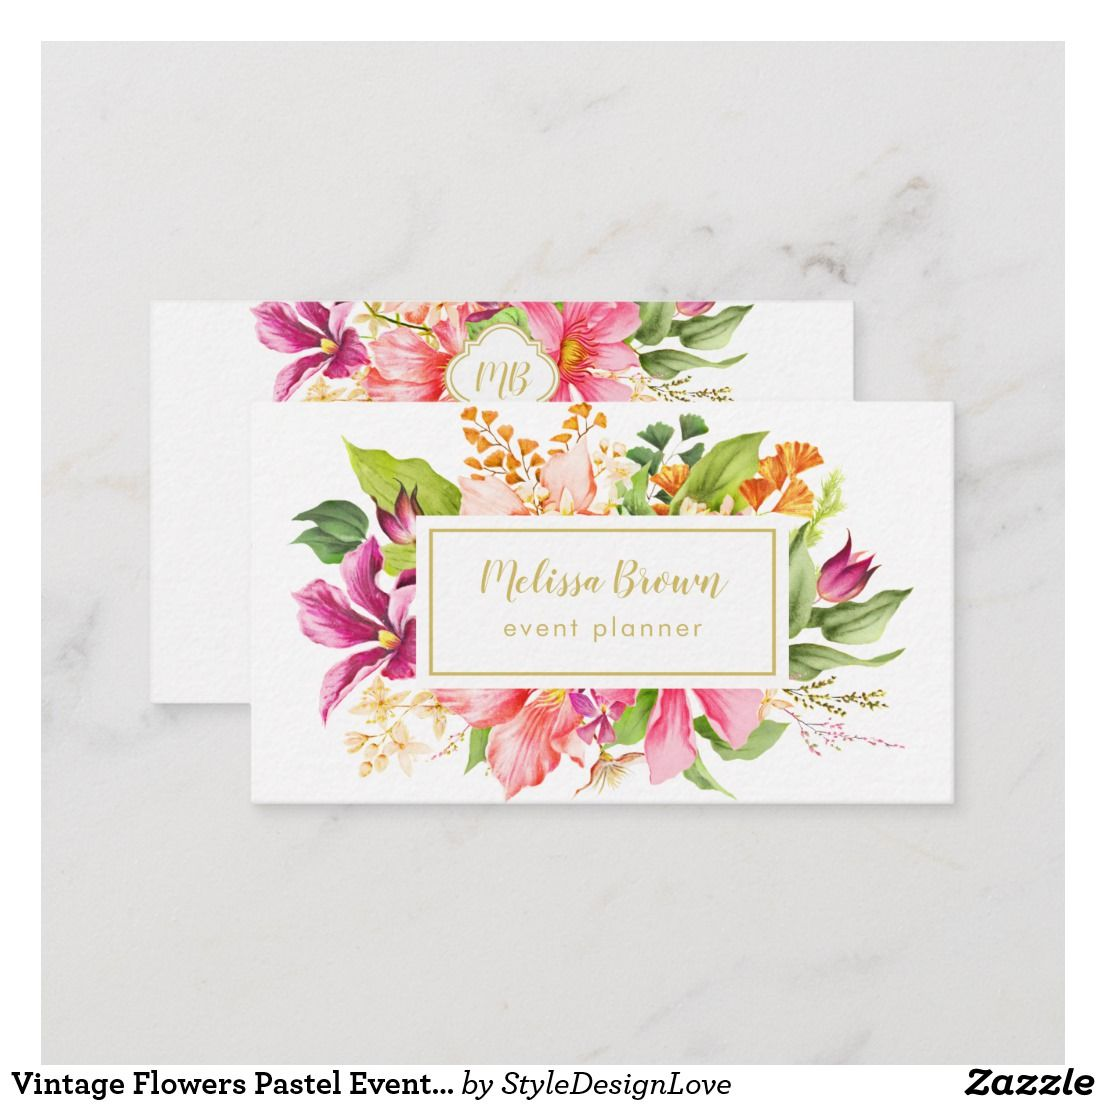 Personalized Vintage Flowers Pastel Event Planner Business Card